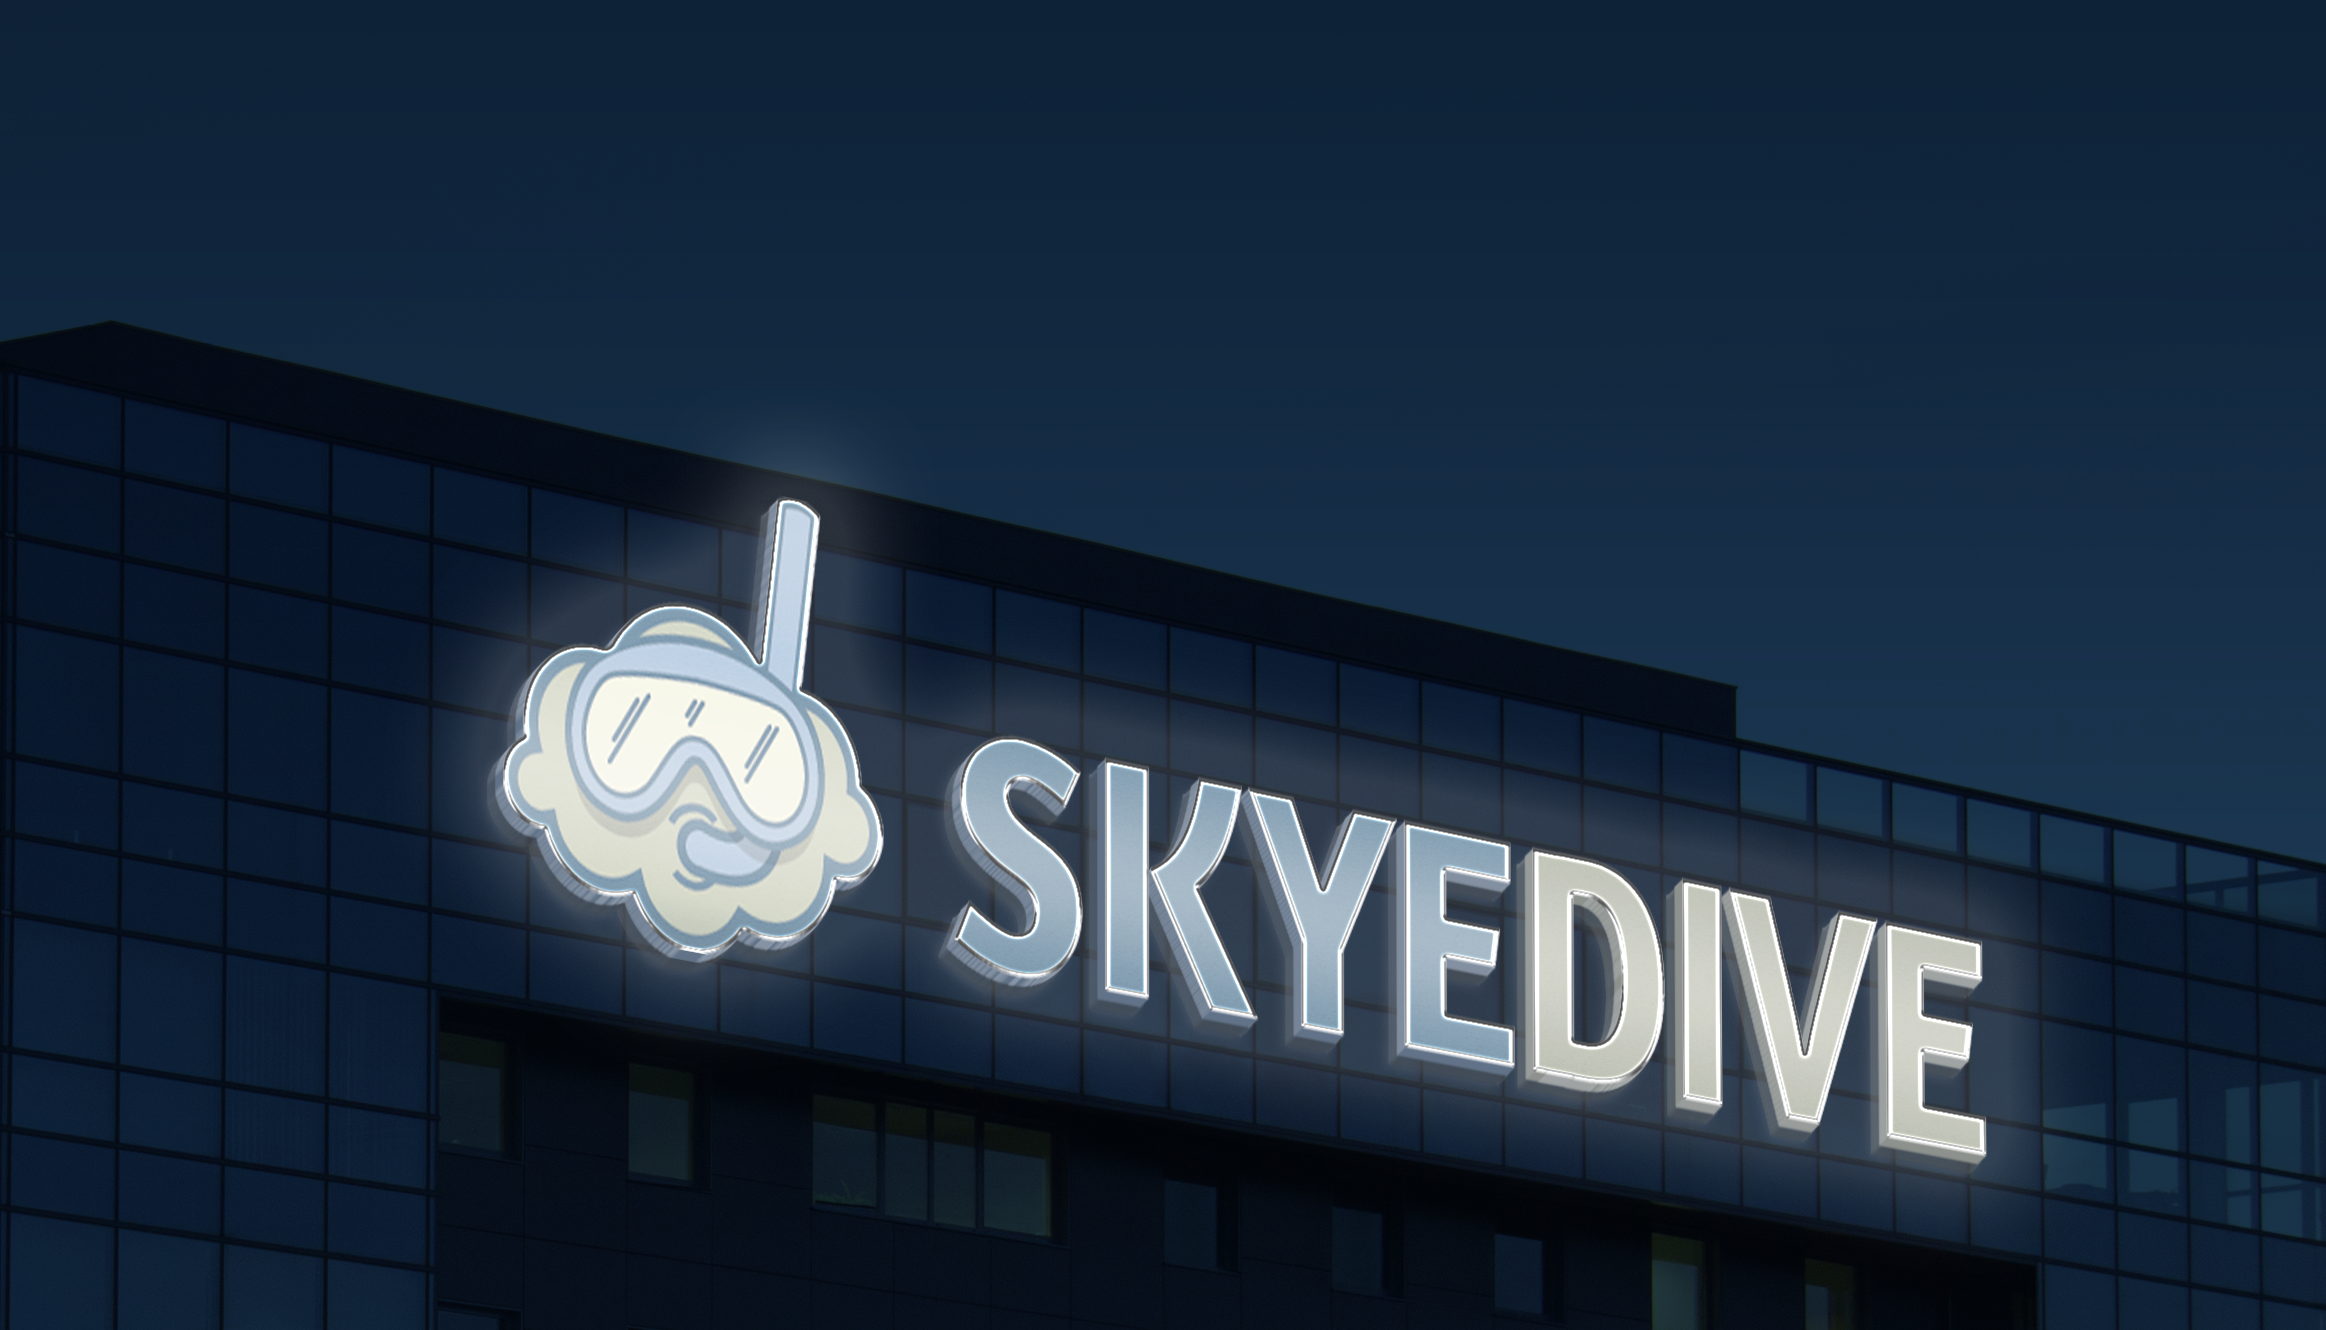 Skyedive_Office_Exterior_4